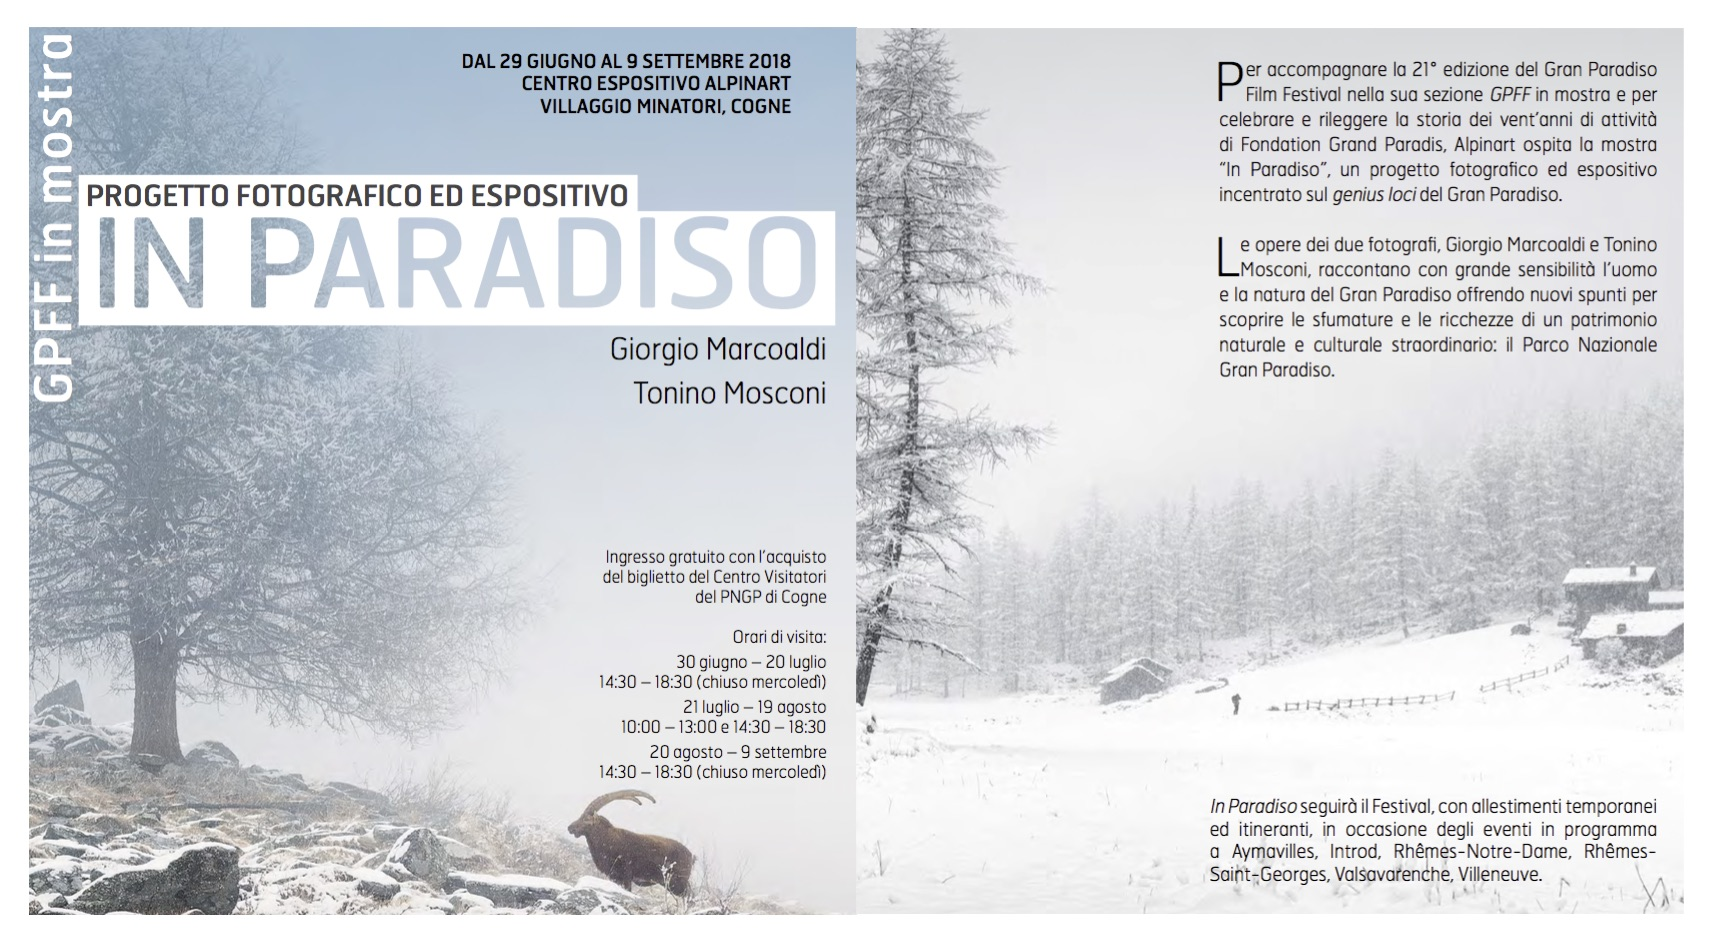 GPFF in mostra - 21°